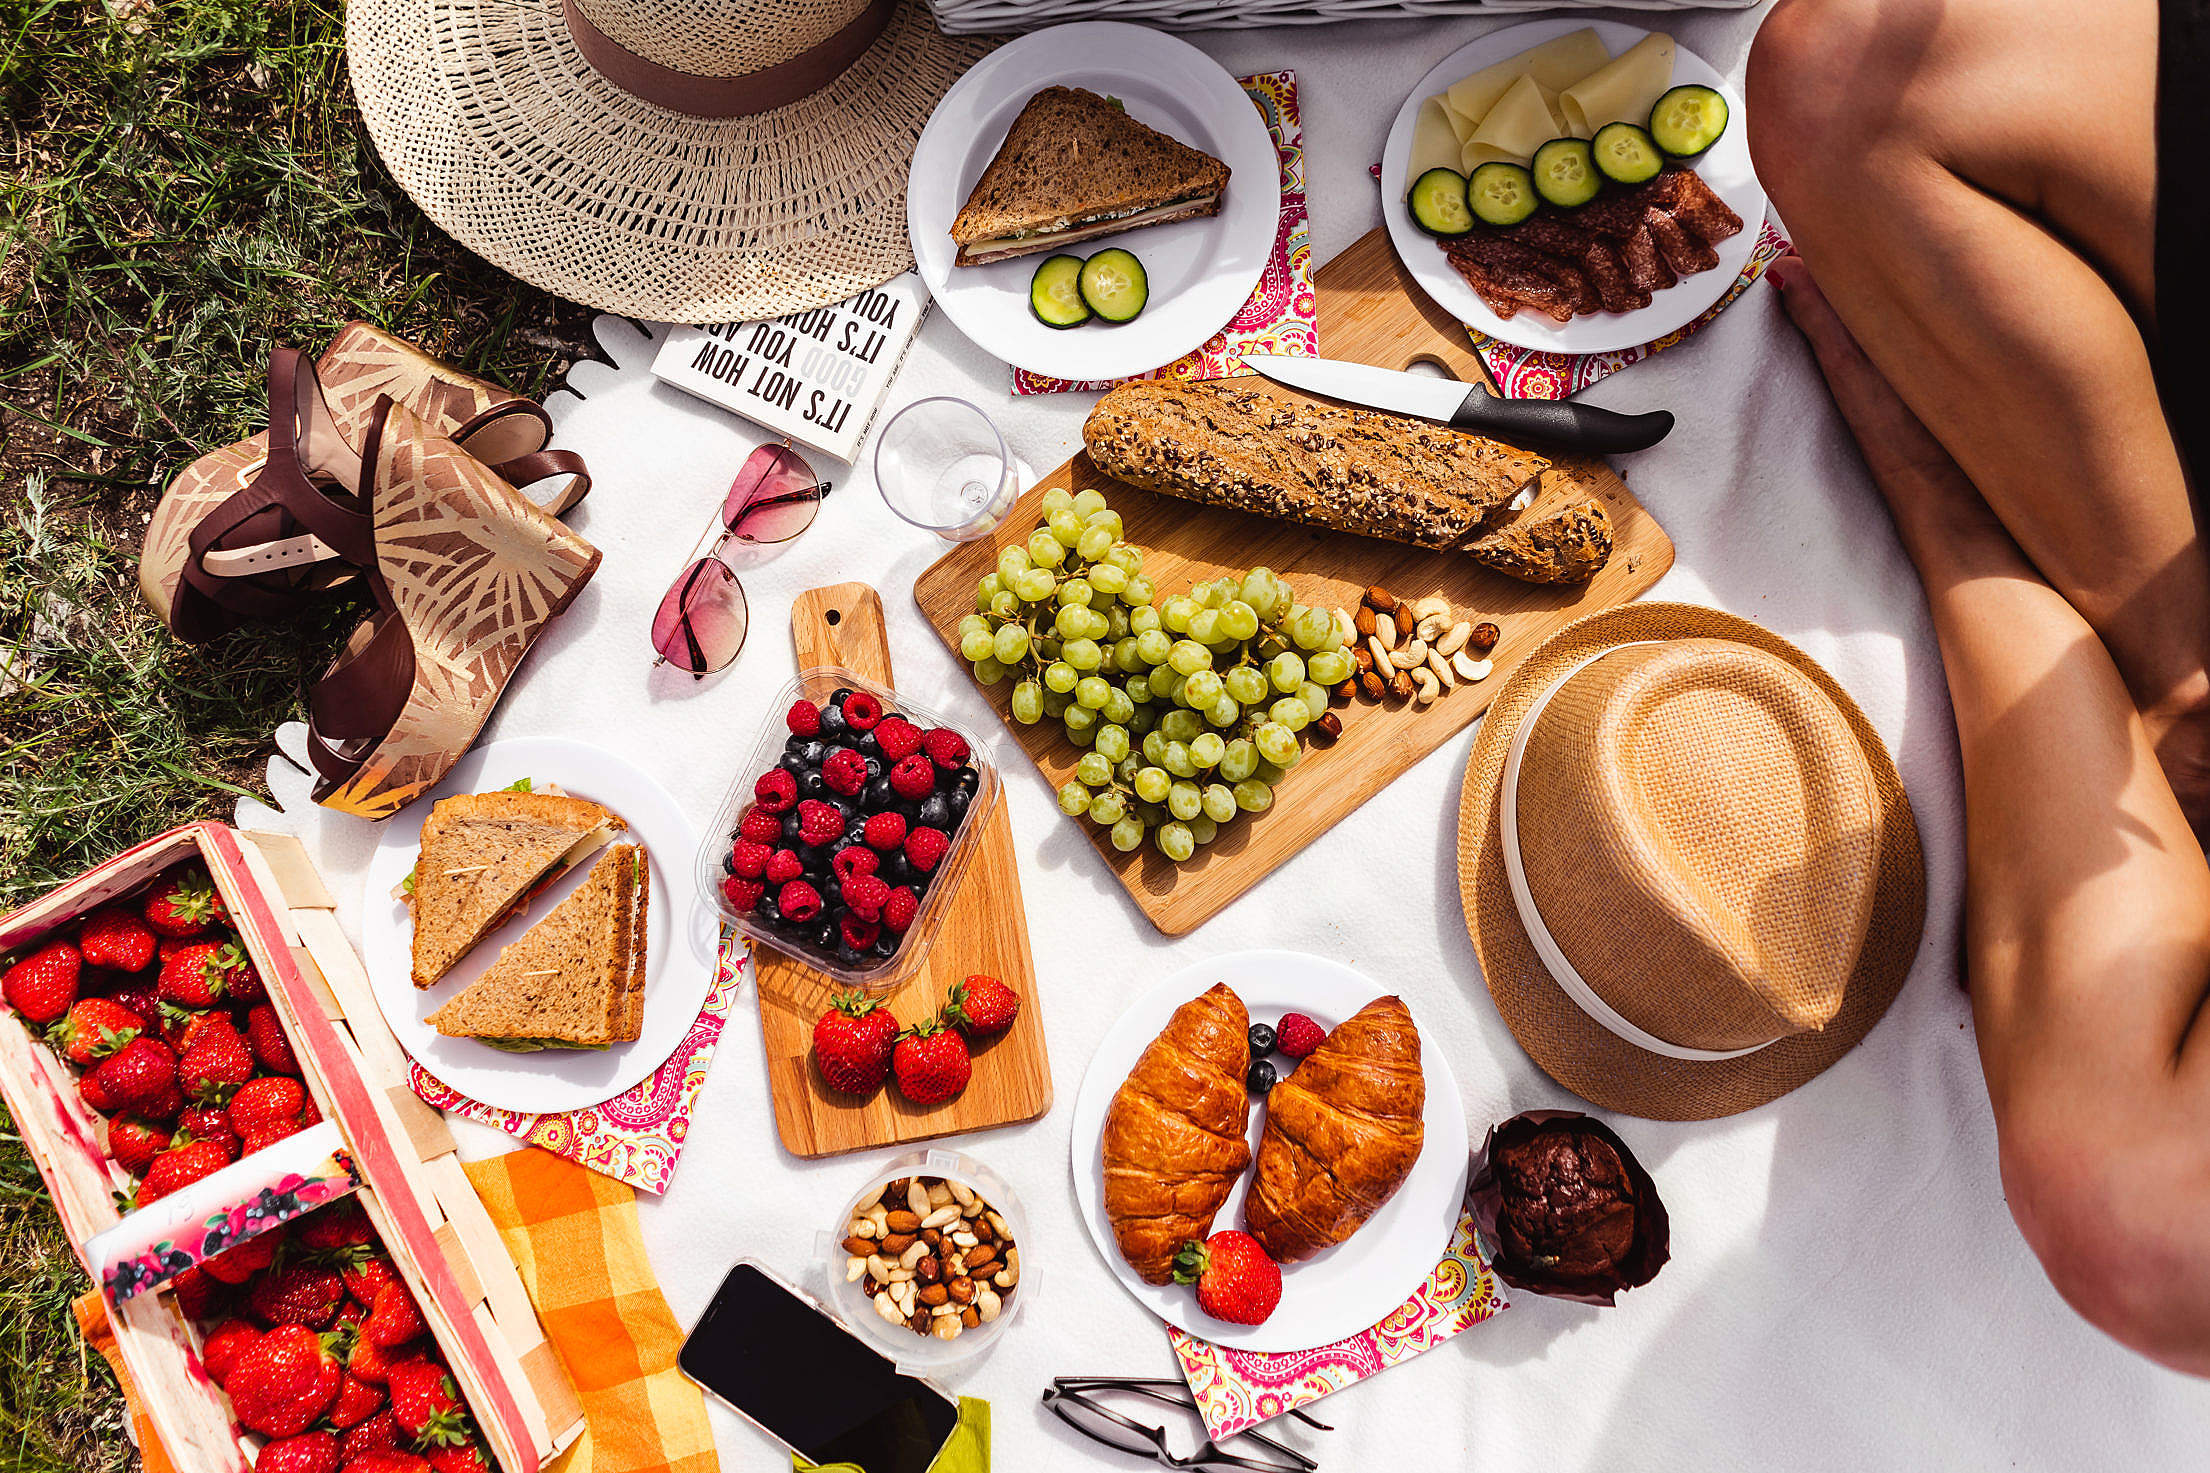 Top View Summer Picnic in The Nature Free Stock Photo